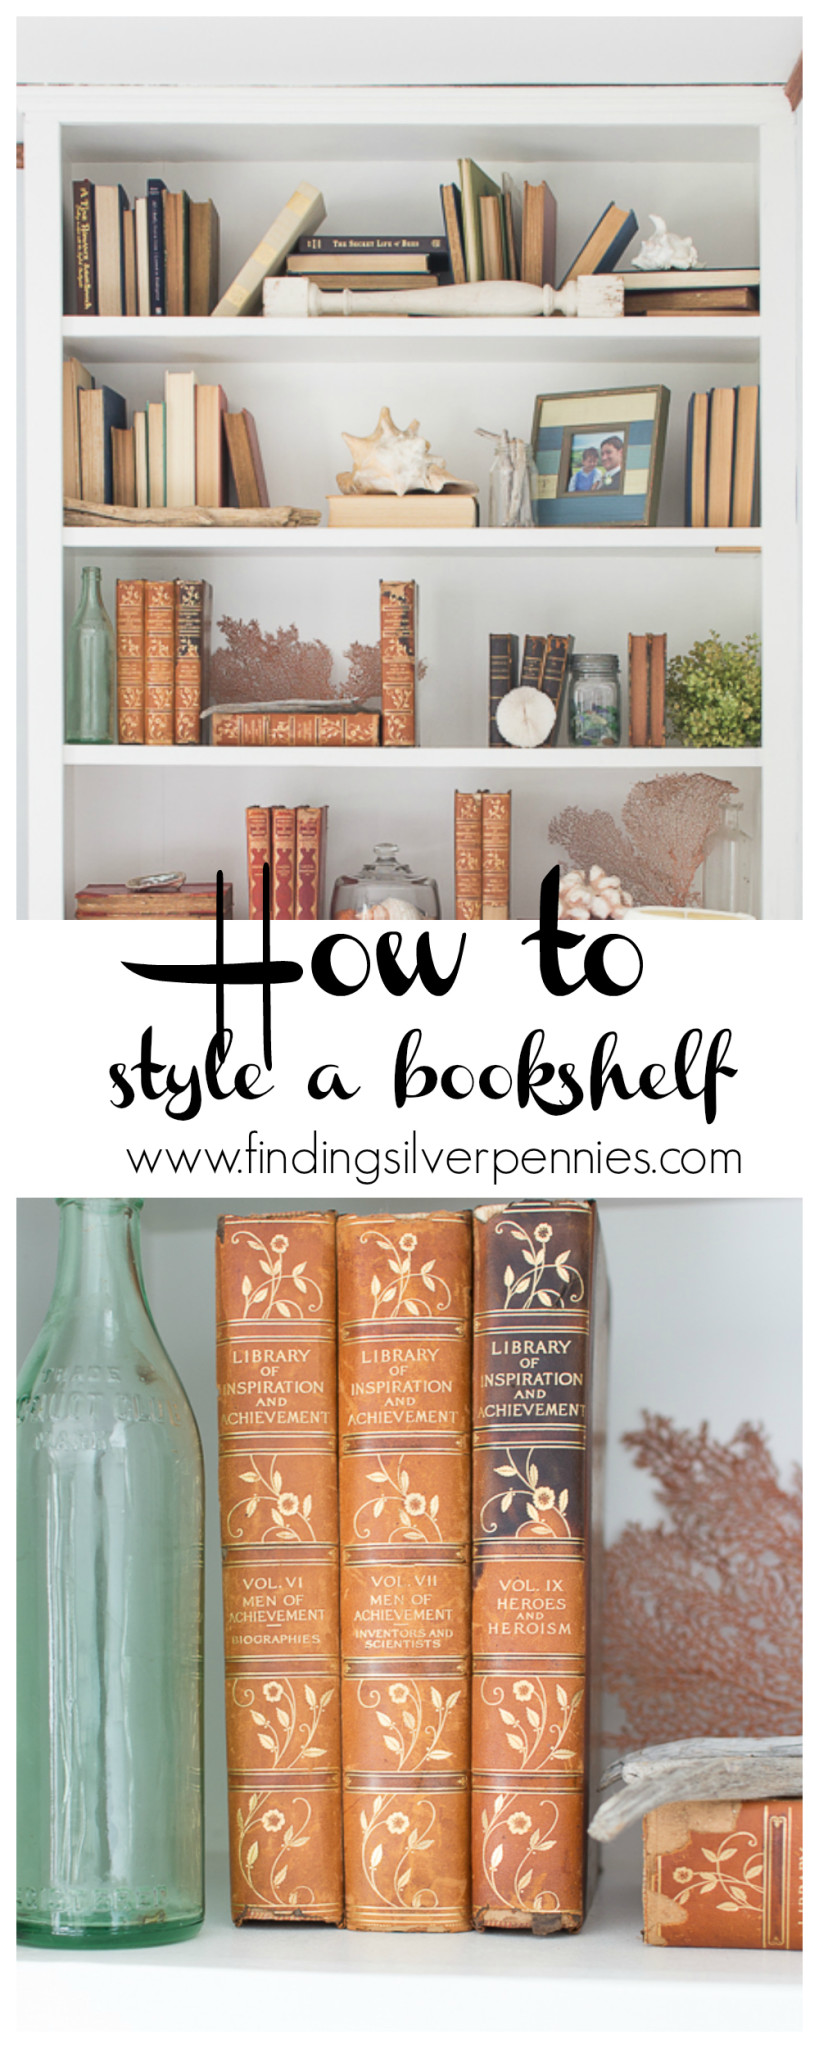 How To Decorate Bookshelves How To Decorate Bookshelves On A Budget  Finding Silver Pennies